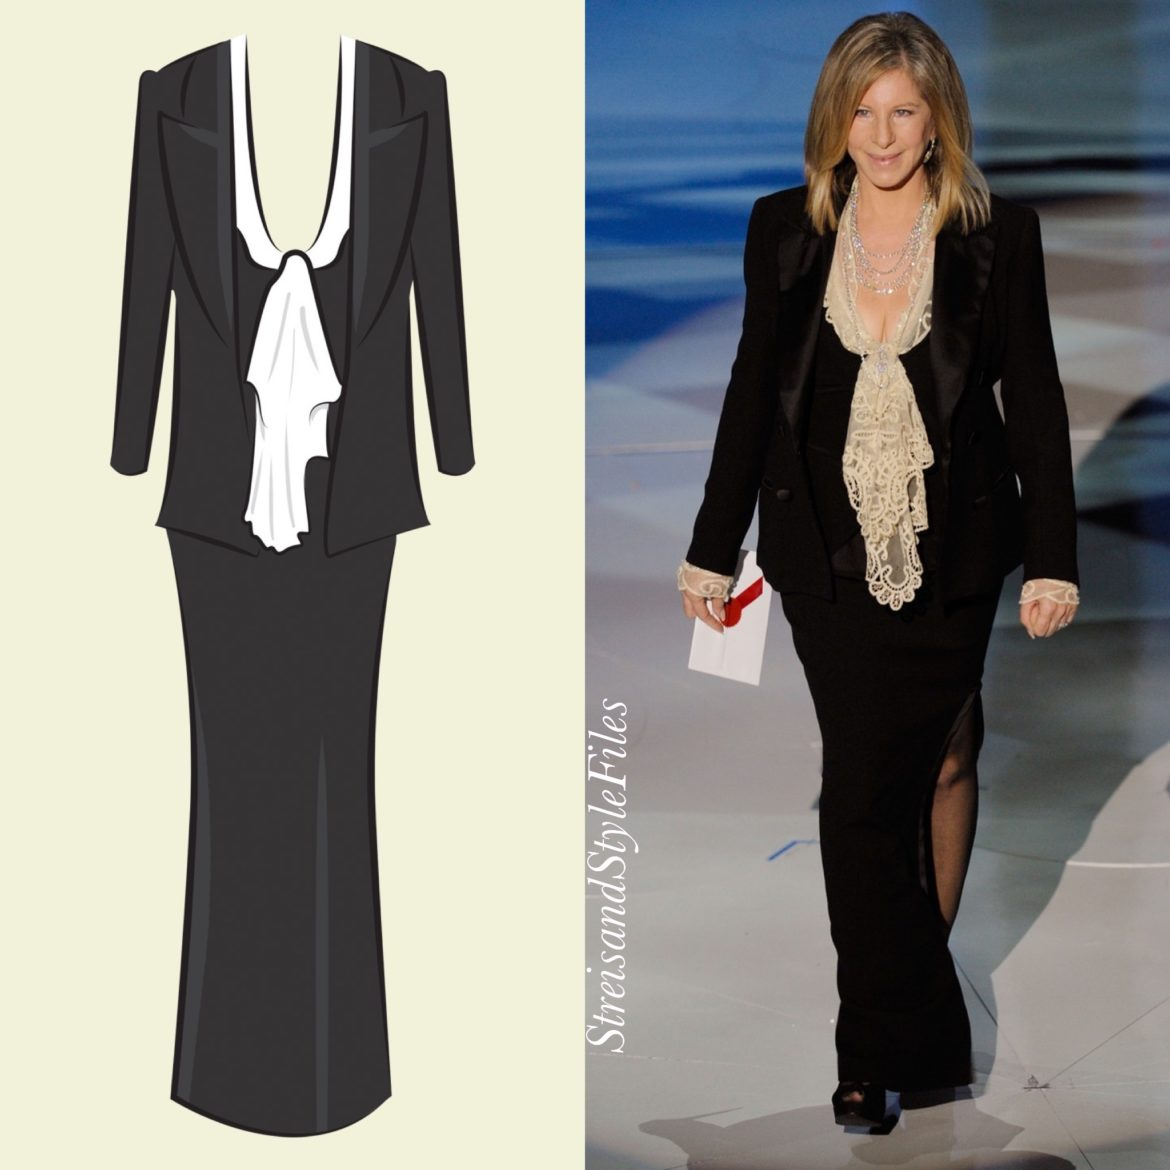 2010 Academy Awards in a haute couture tuxedo designed in collaboration with Randolph Duke